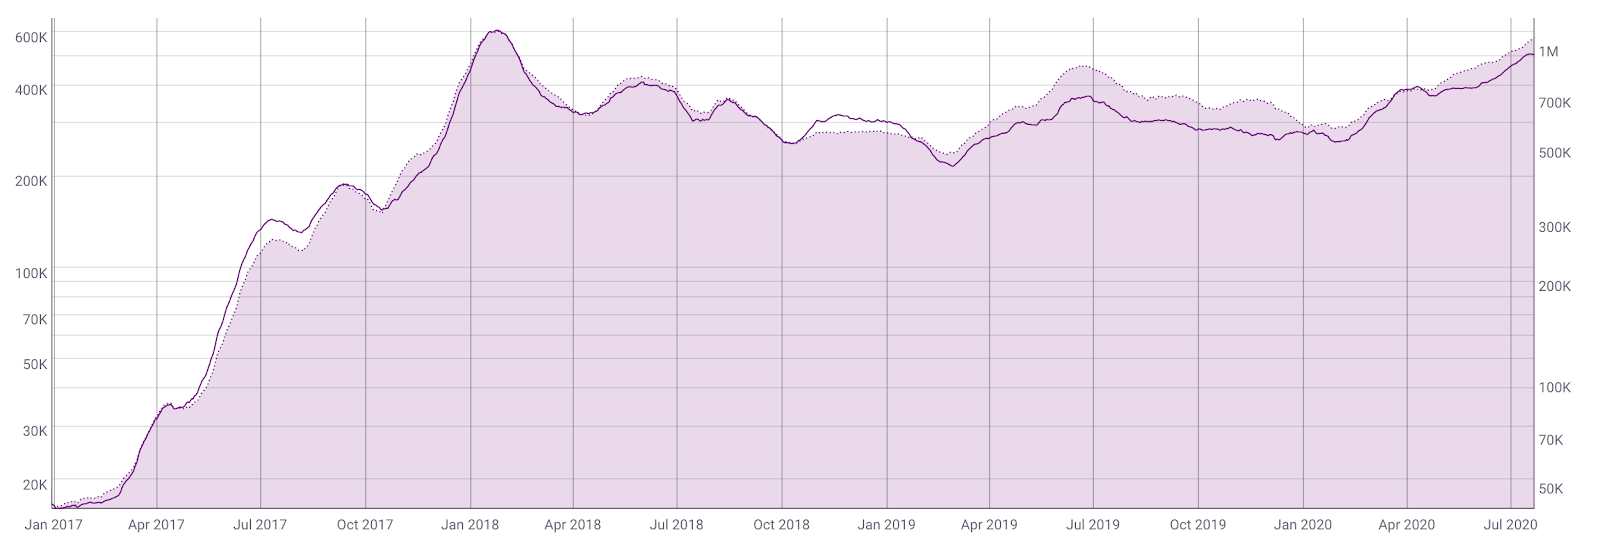 Daily Active Addresses vs Daily Transactions on Ethereum by Coinmetrics